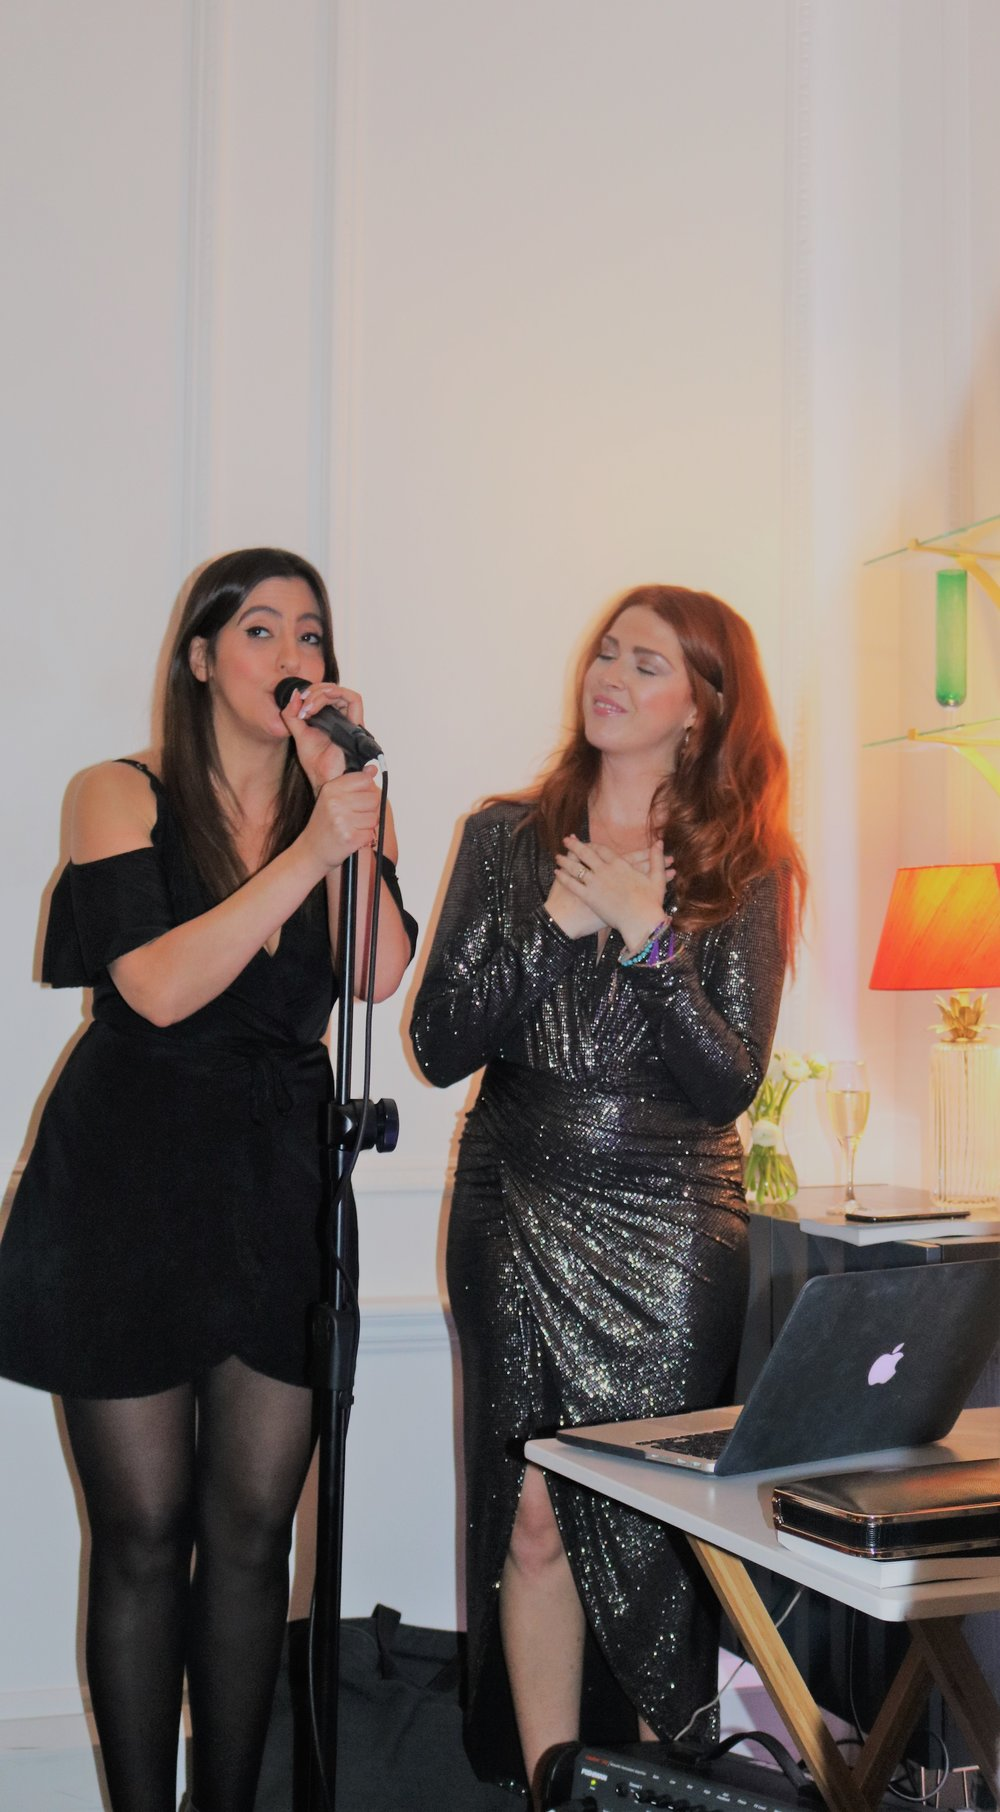 Westend Vocalist Sabrina Alouche and Jennifer Hardie (Curator) performing a duet together